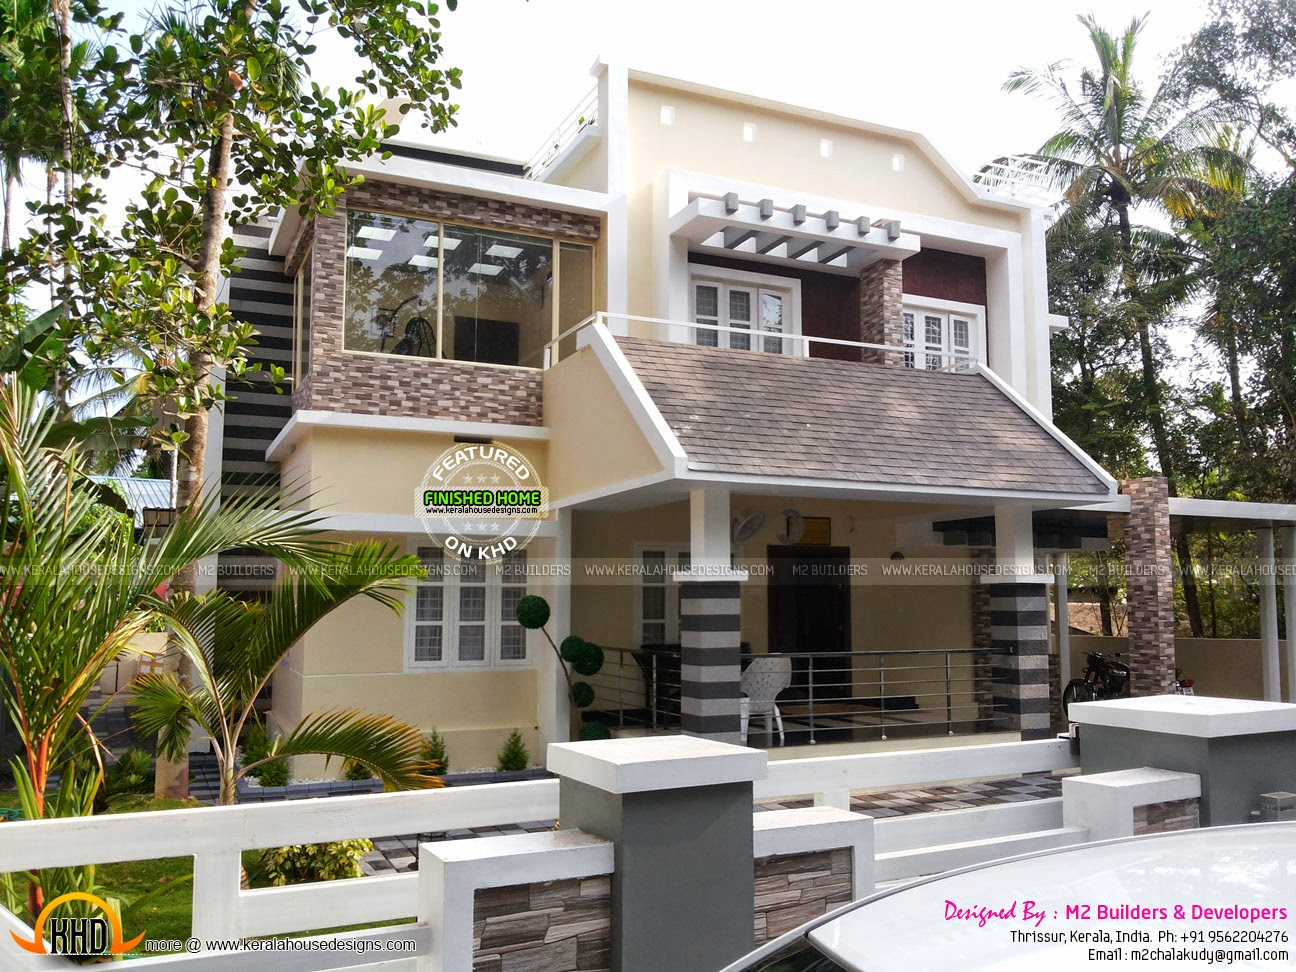 Finished house with interior designs kerala home design for House plans with finished photos